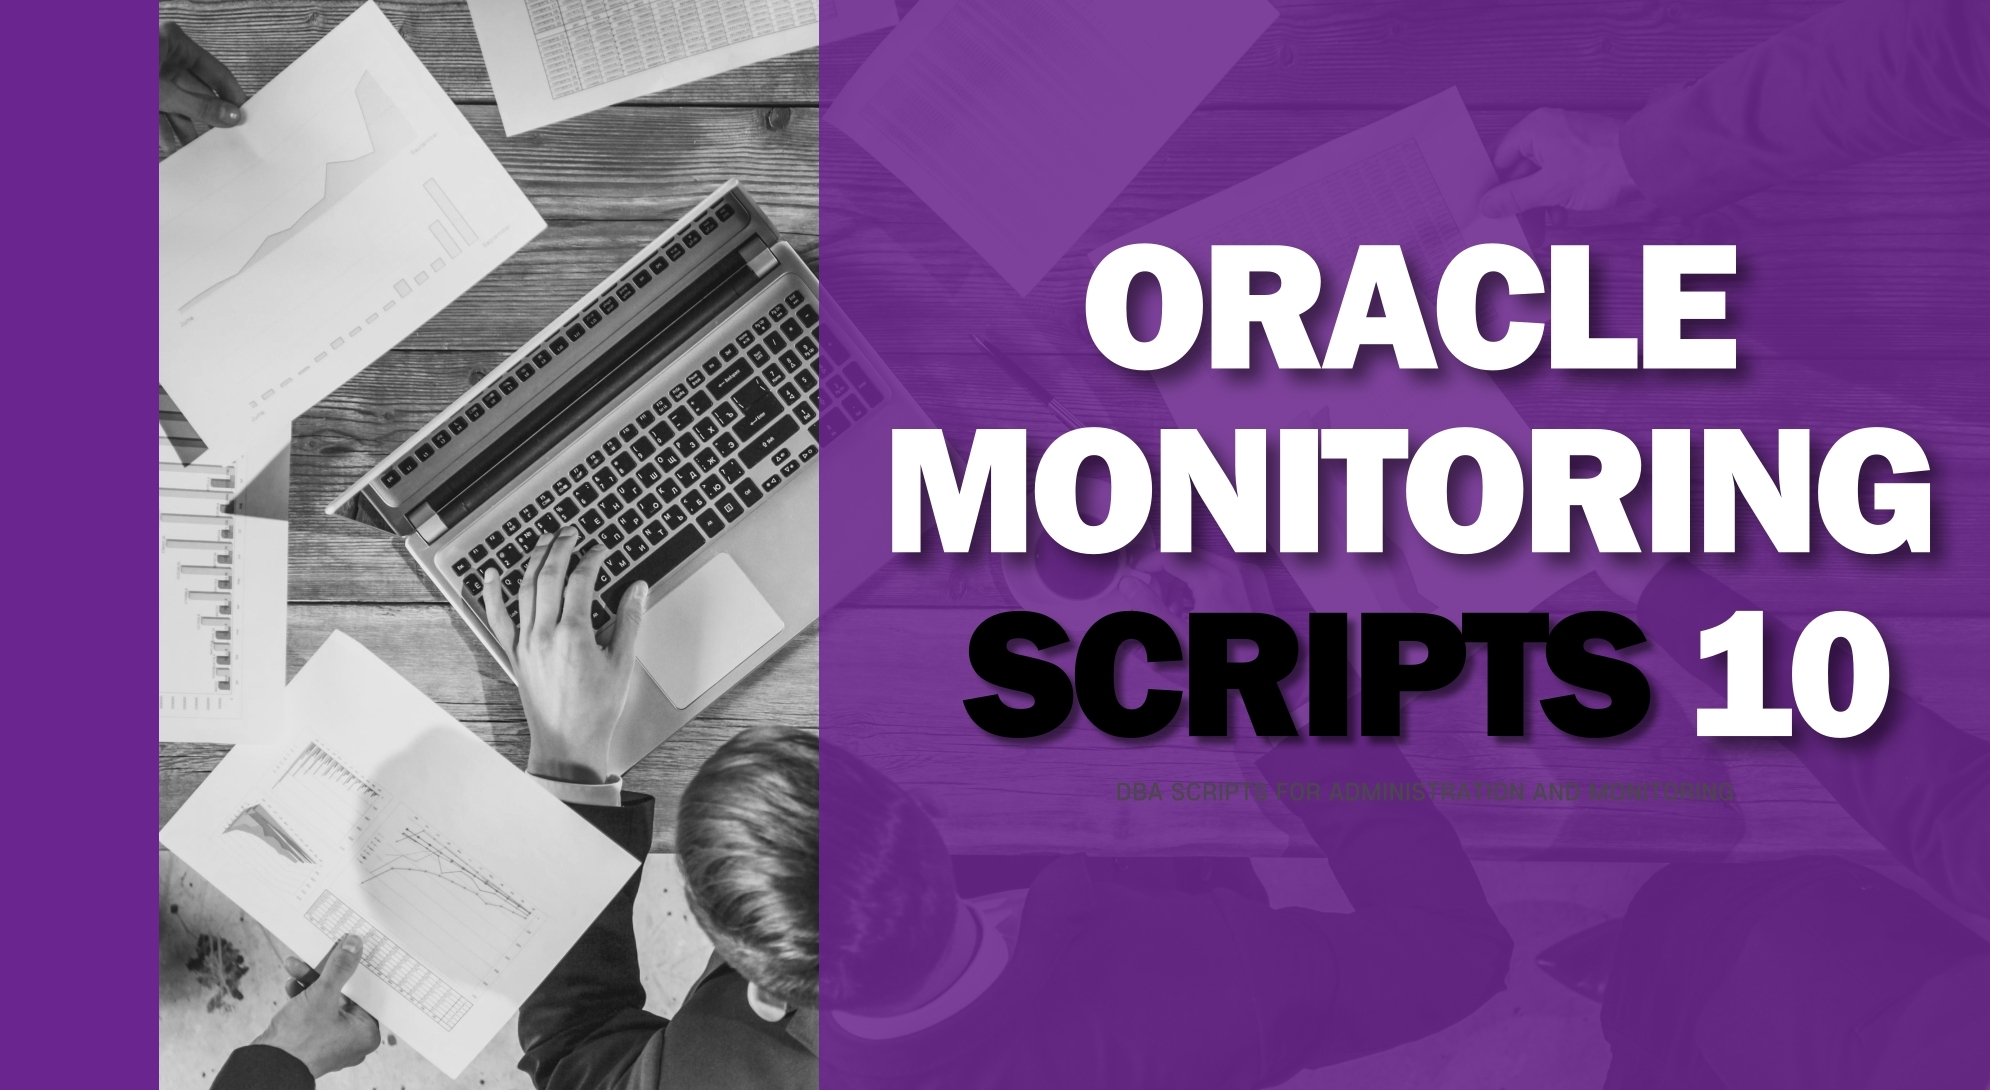 Oracle Monitoring Scripts 10